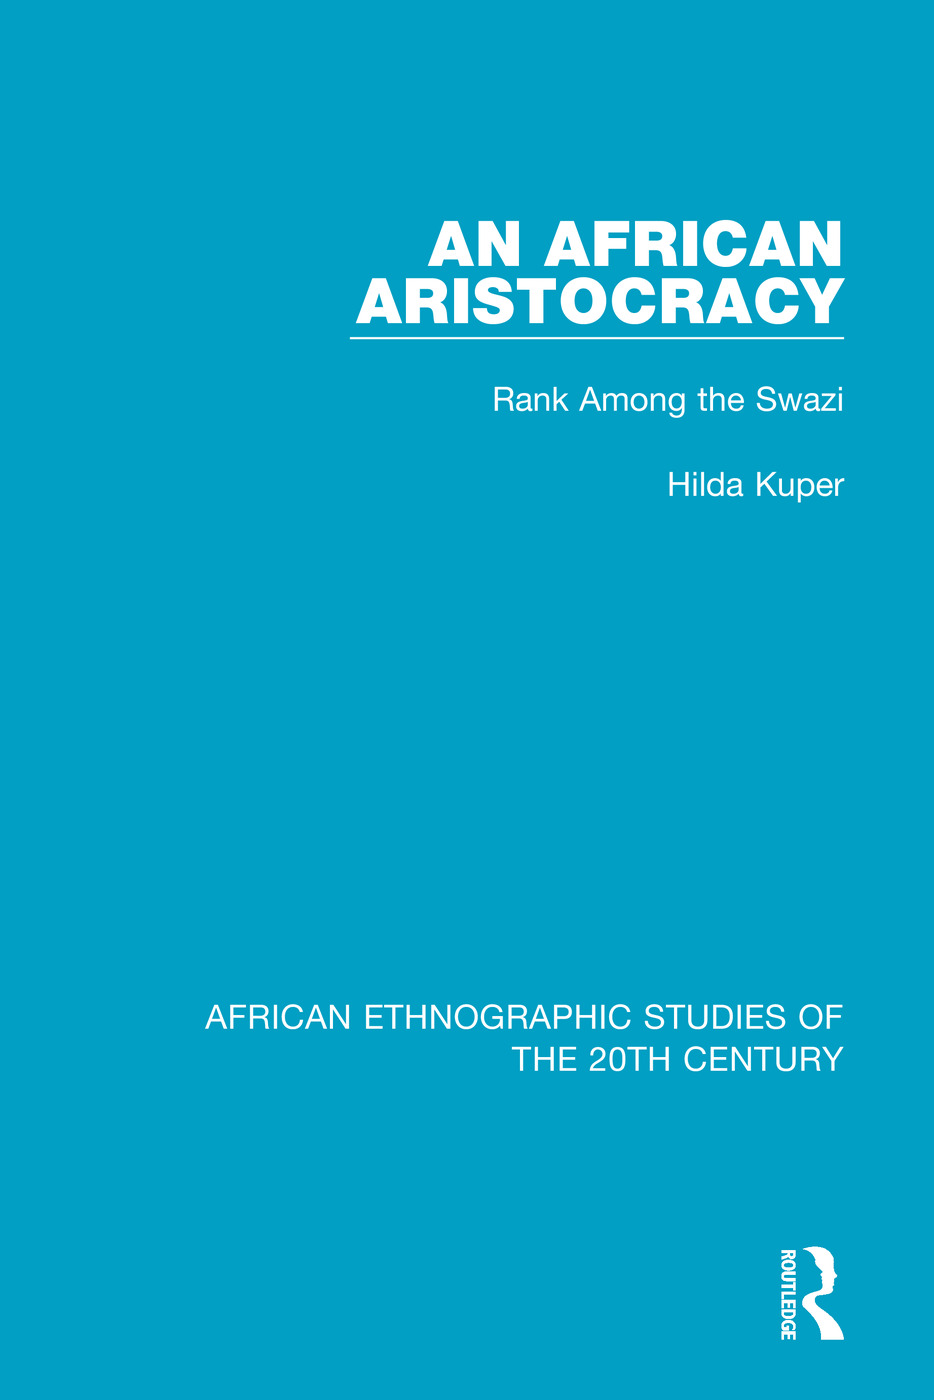 An African Aristocracy